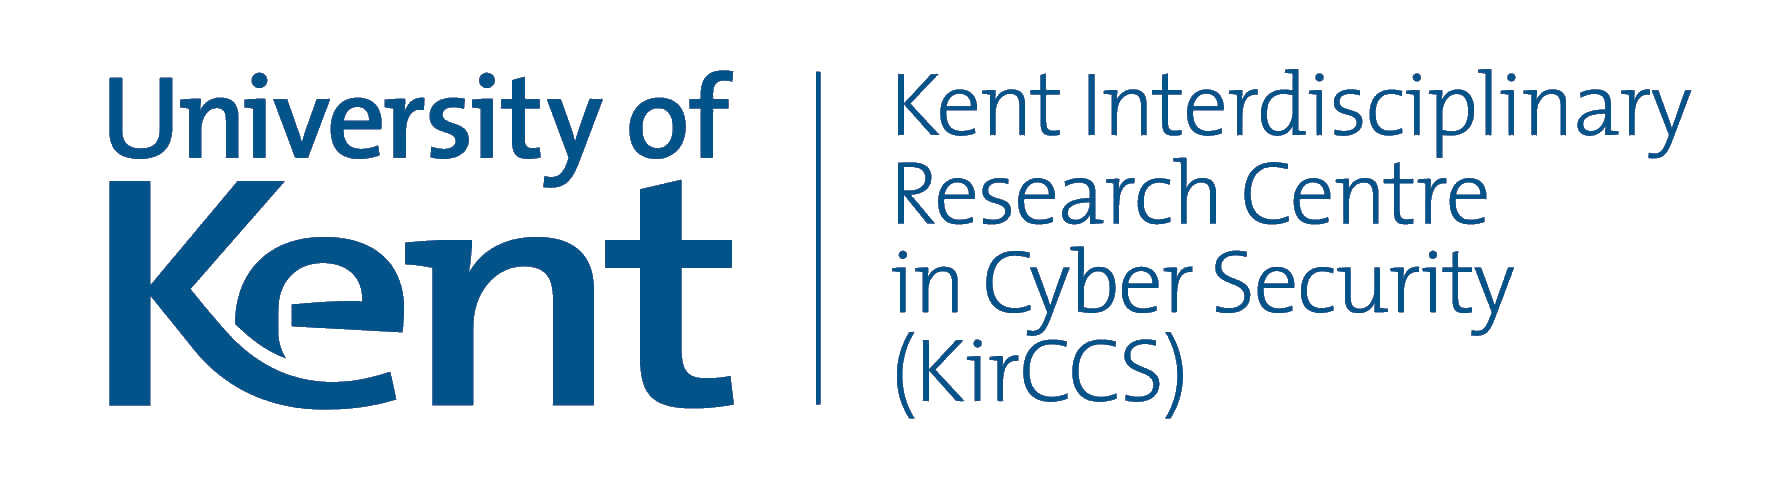 Kent Interdisciplinary Research Centre in Cyber Security (KirCCS), University of Kent